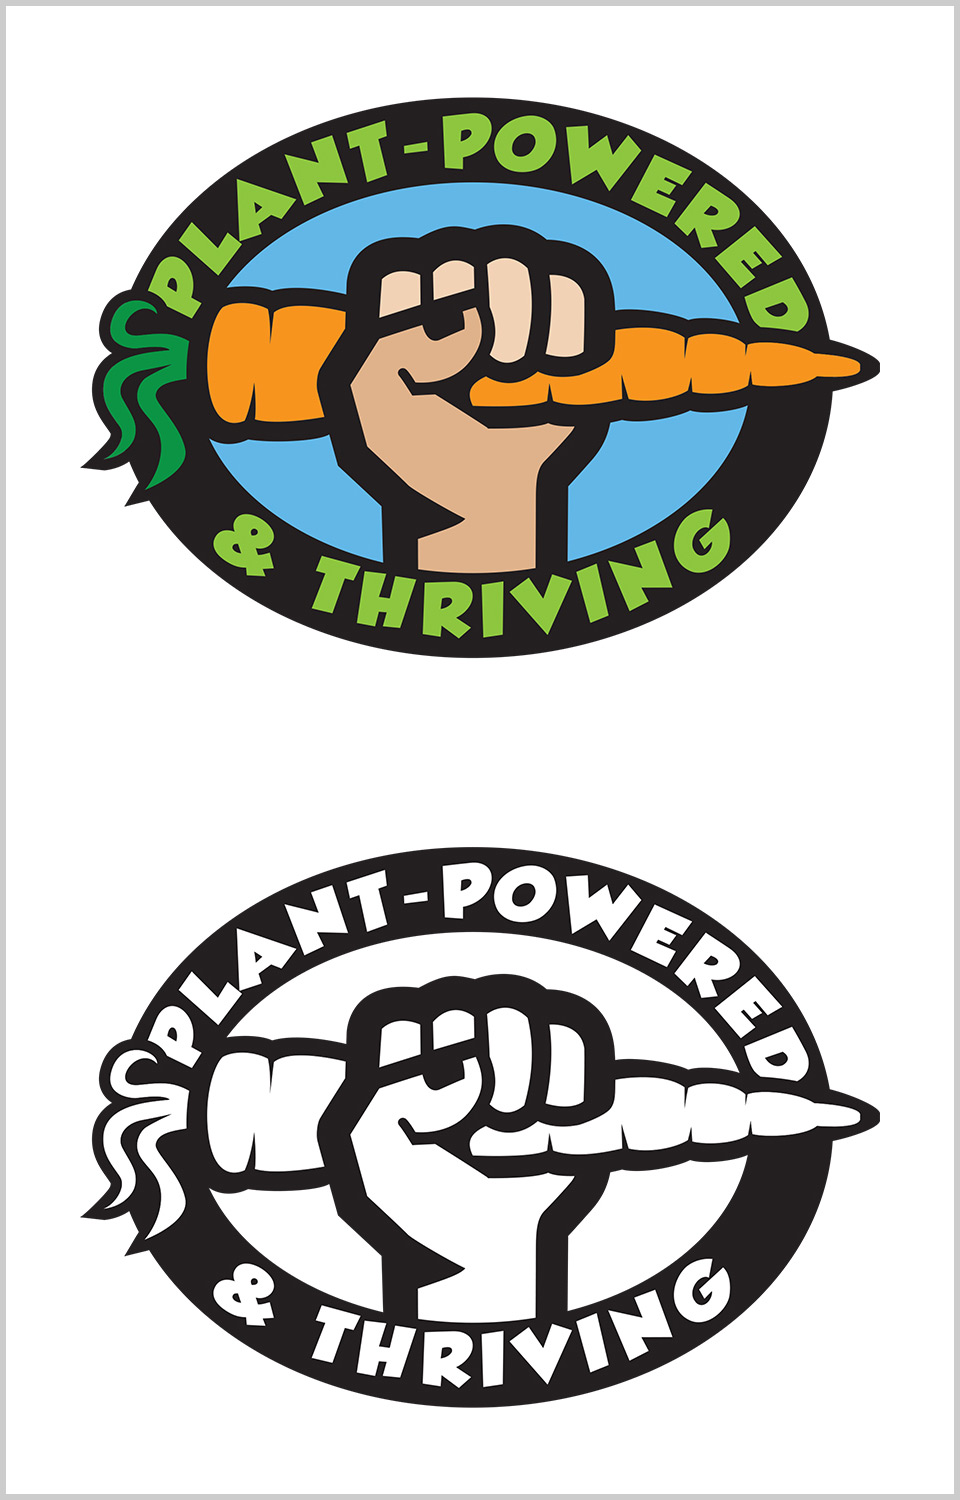 Food Revolution Plant Powered and Thriving Logo